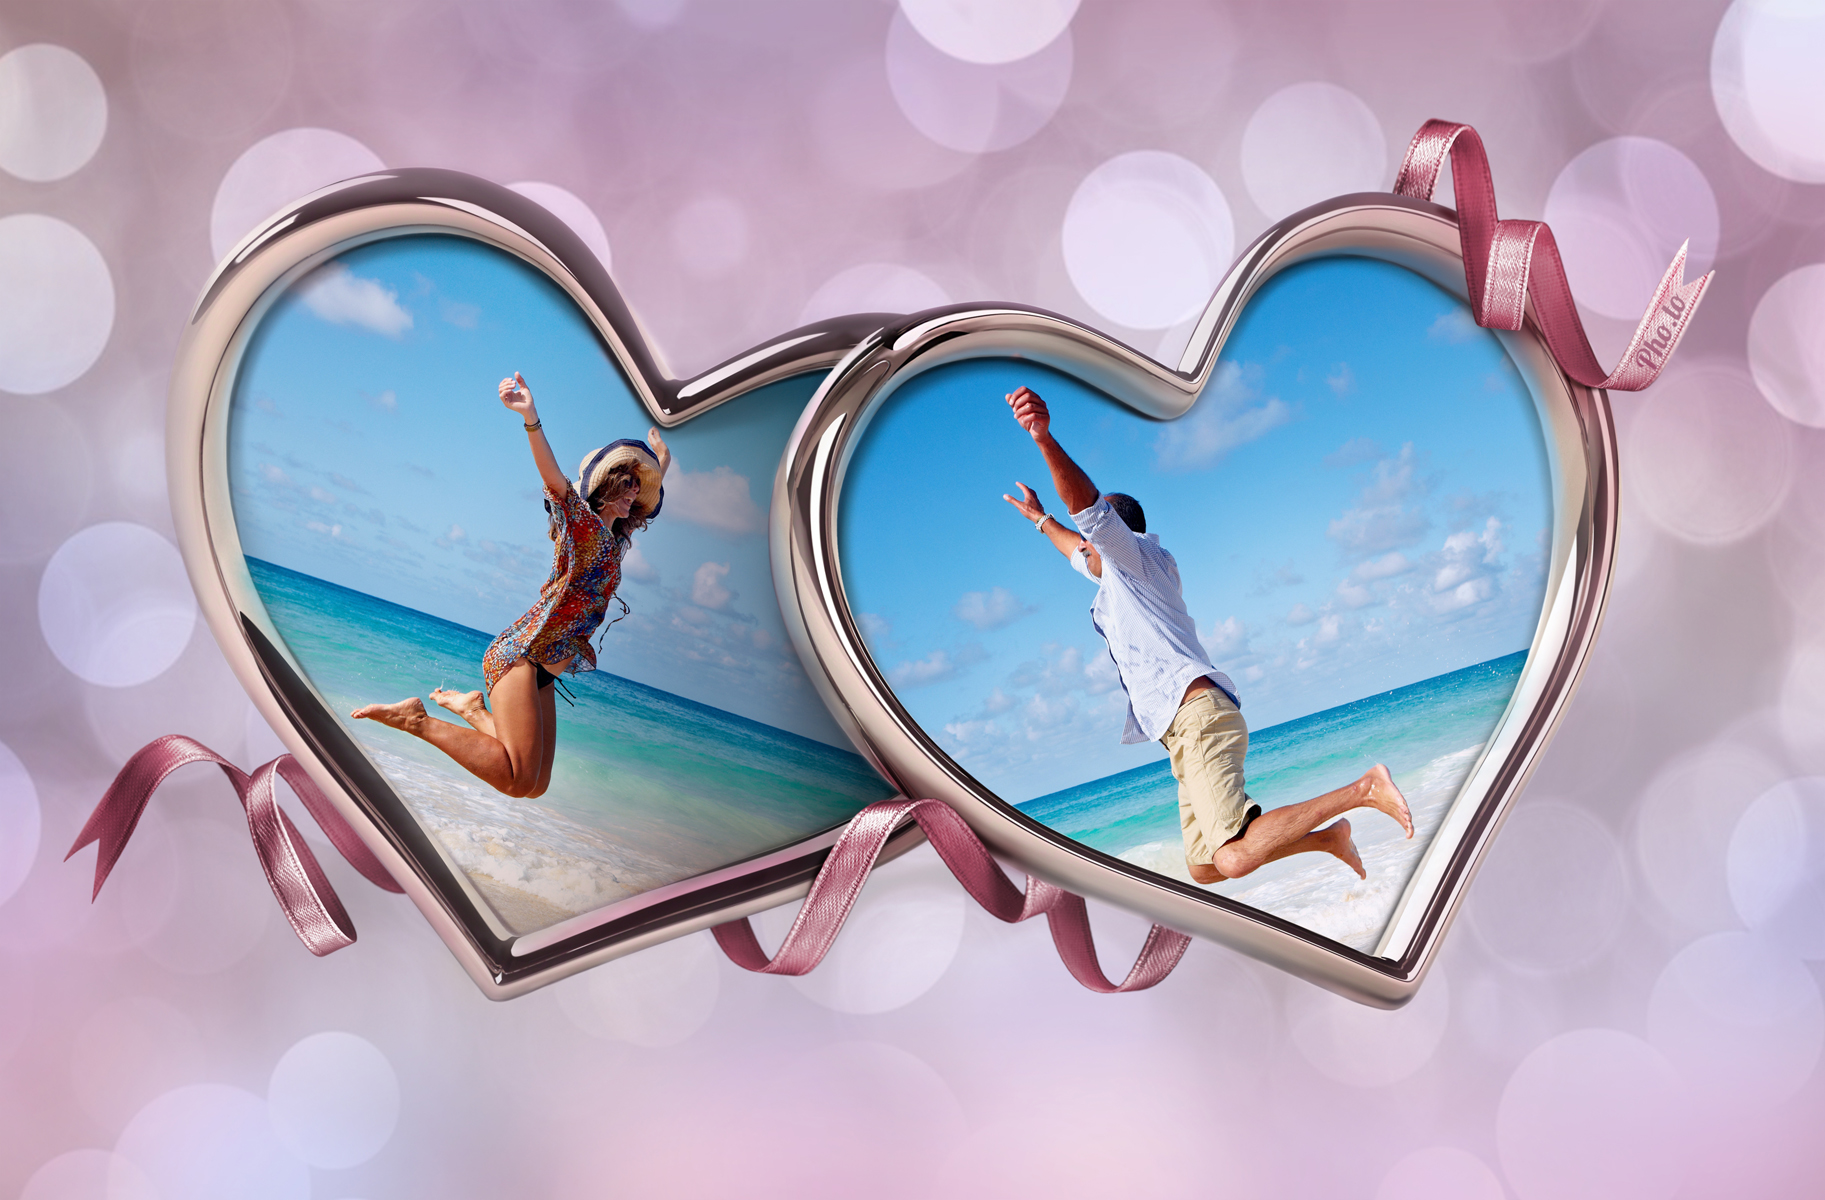 Double heart frame: combine two photos in one heart collage